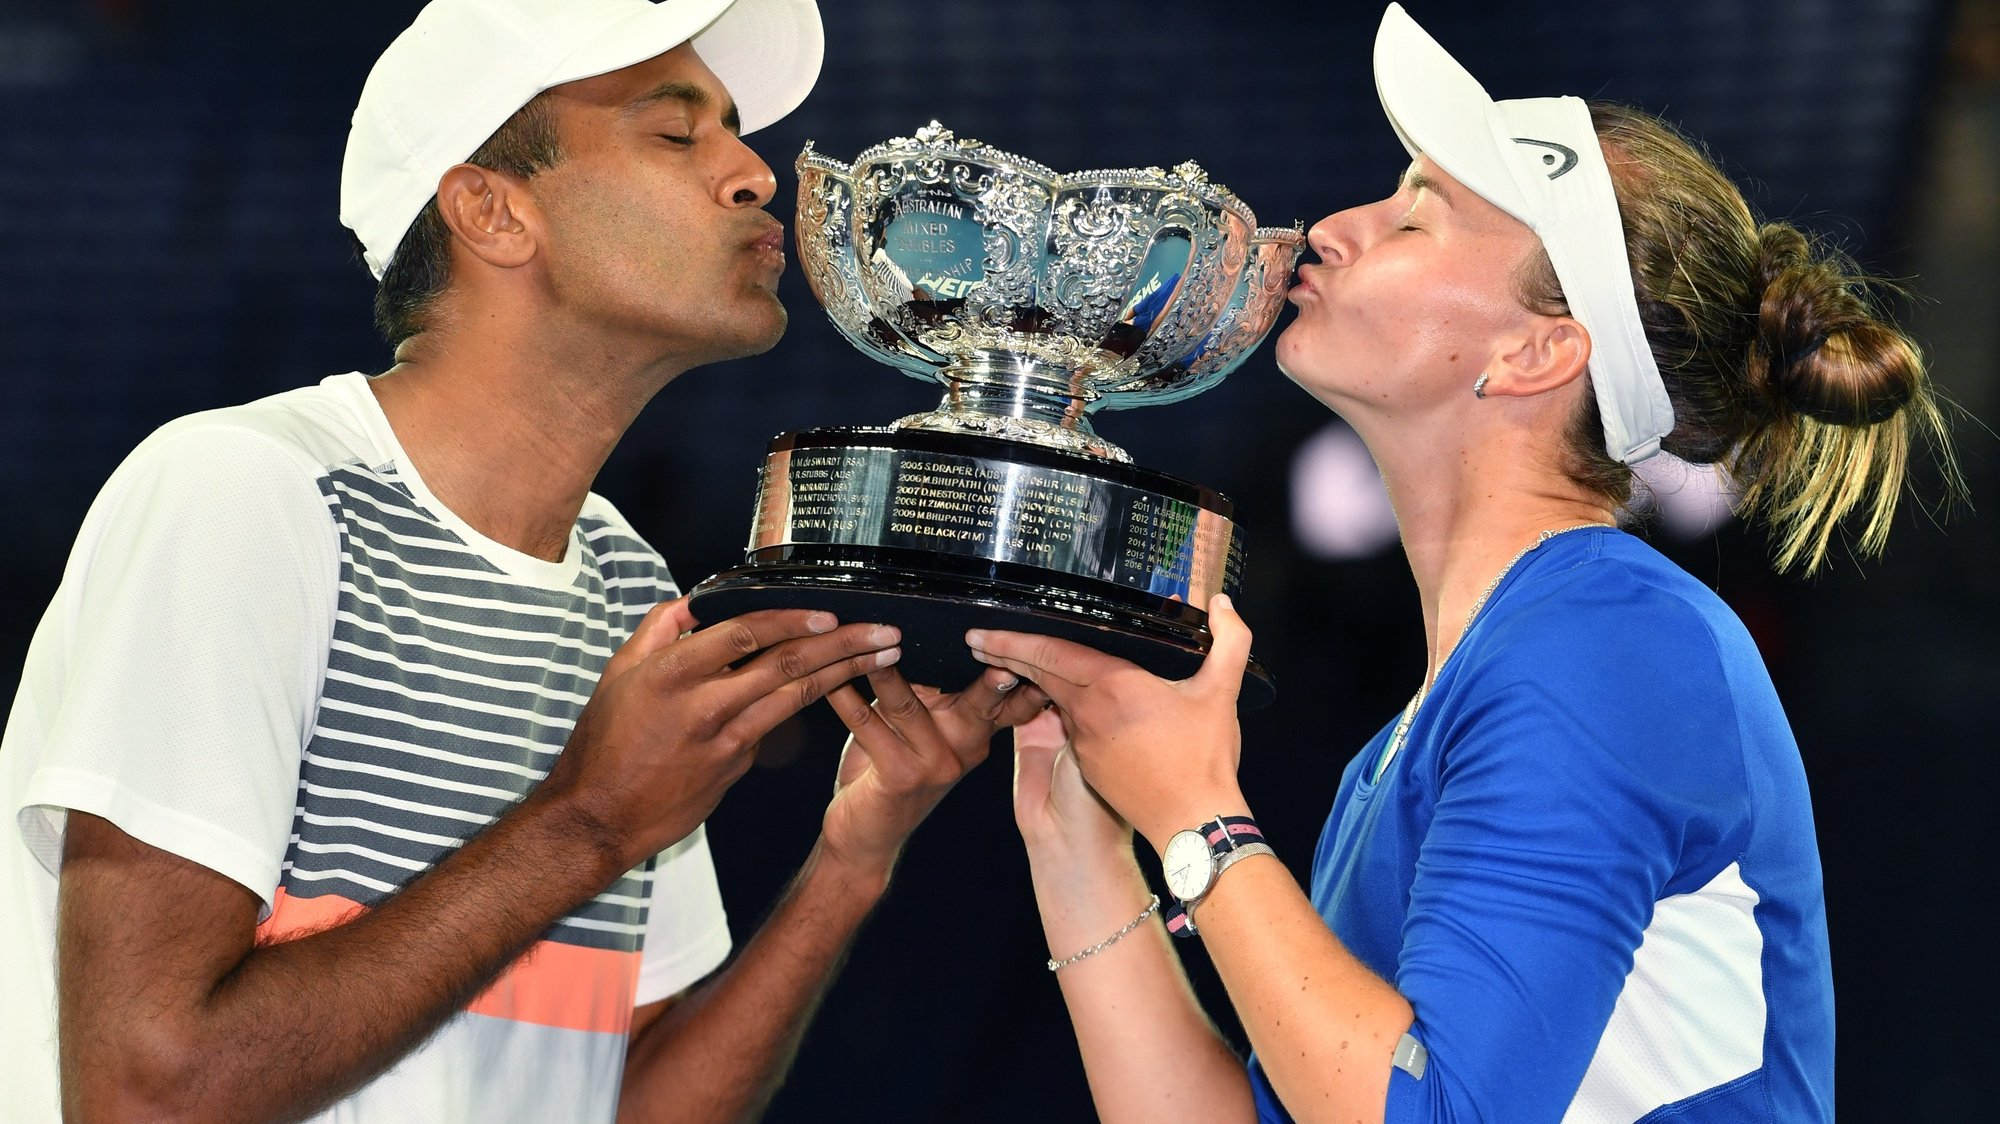 epa09025643 Barbora Krejcikova of the Czech Republic and Rajeev Ram of the United States kiss the trophy after winning the mixed doubles final against Matthew Ebden and Samantha Stosur of Australia on day 13 of the Australian Open tennis tournament at Rod Laver Arena in Melbourne, Australia, 20 February 2021.  EPA/DEAN LEWINS  AUSTRALIA AND NEW ZEALAND OUT